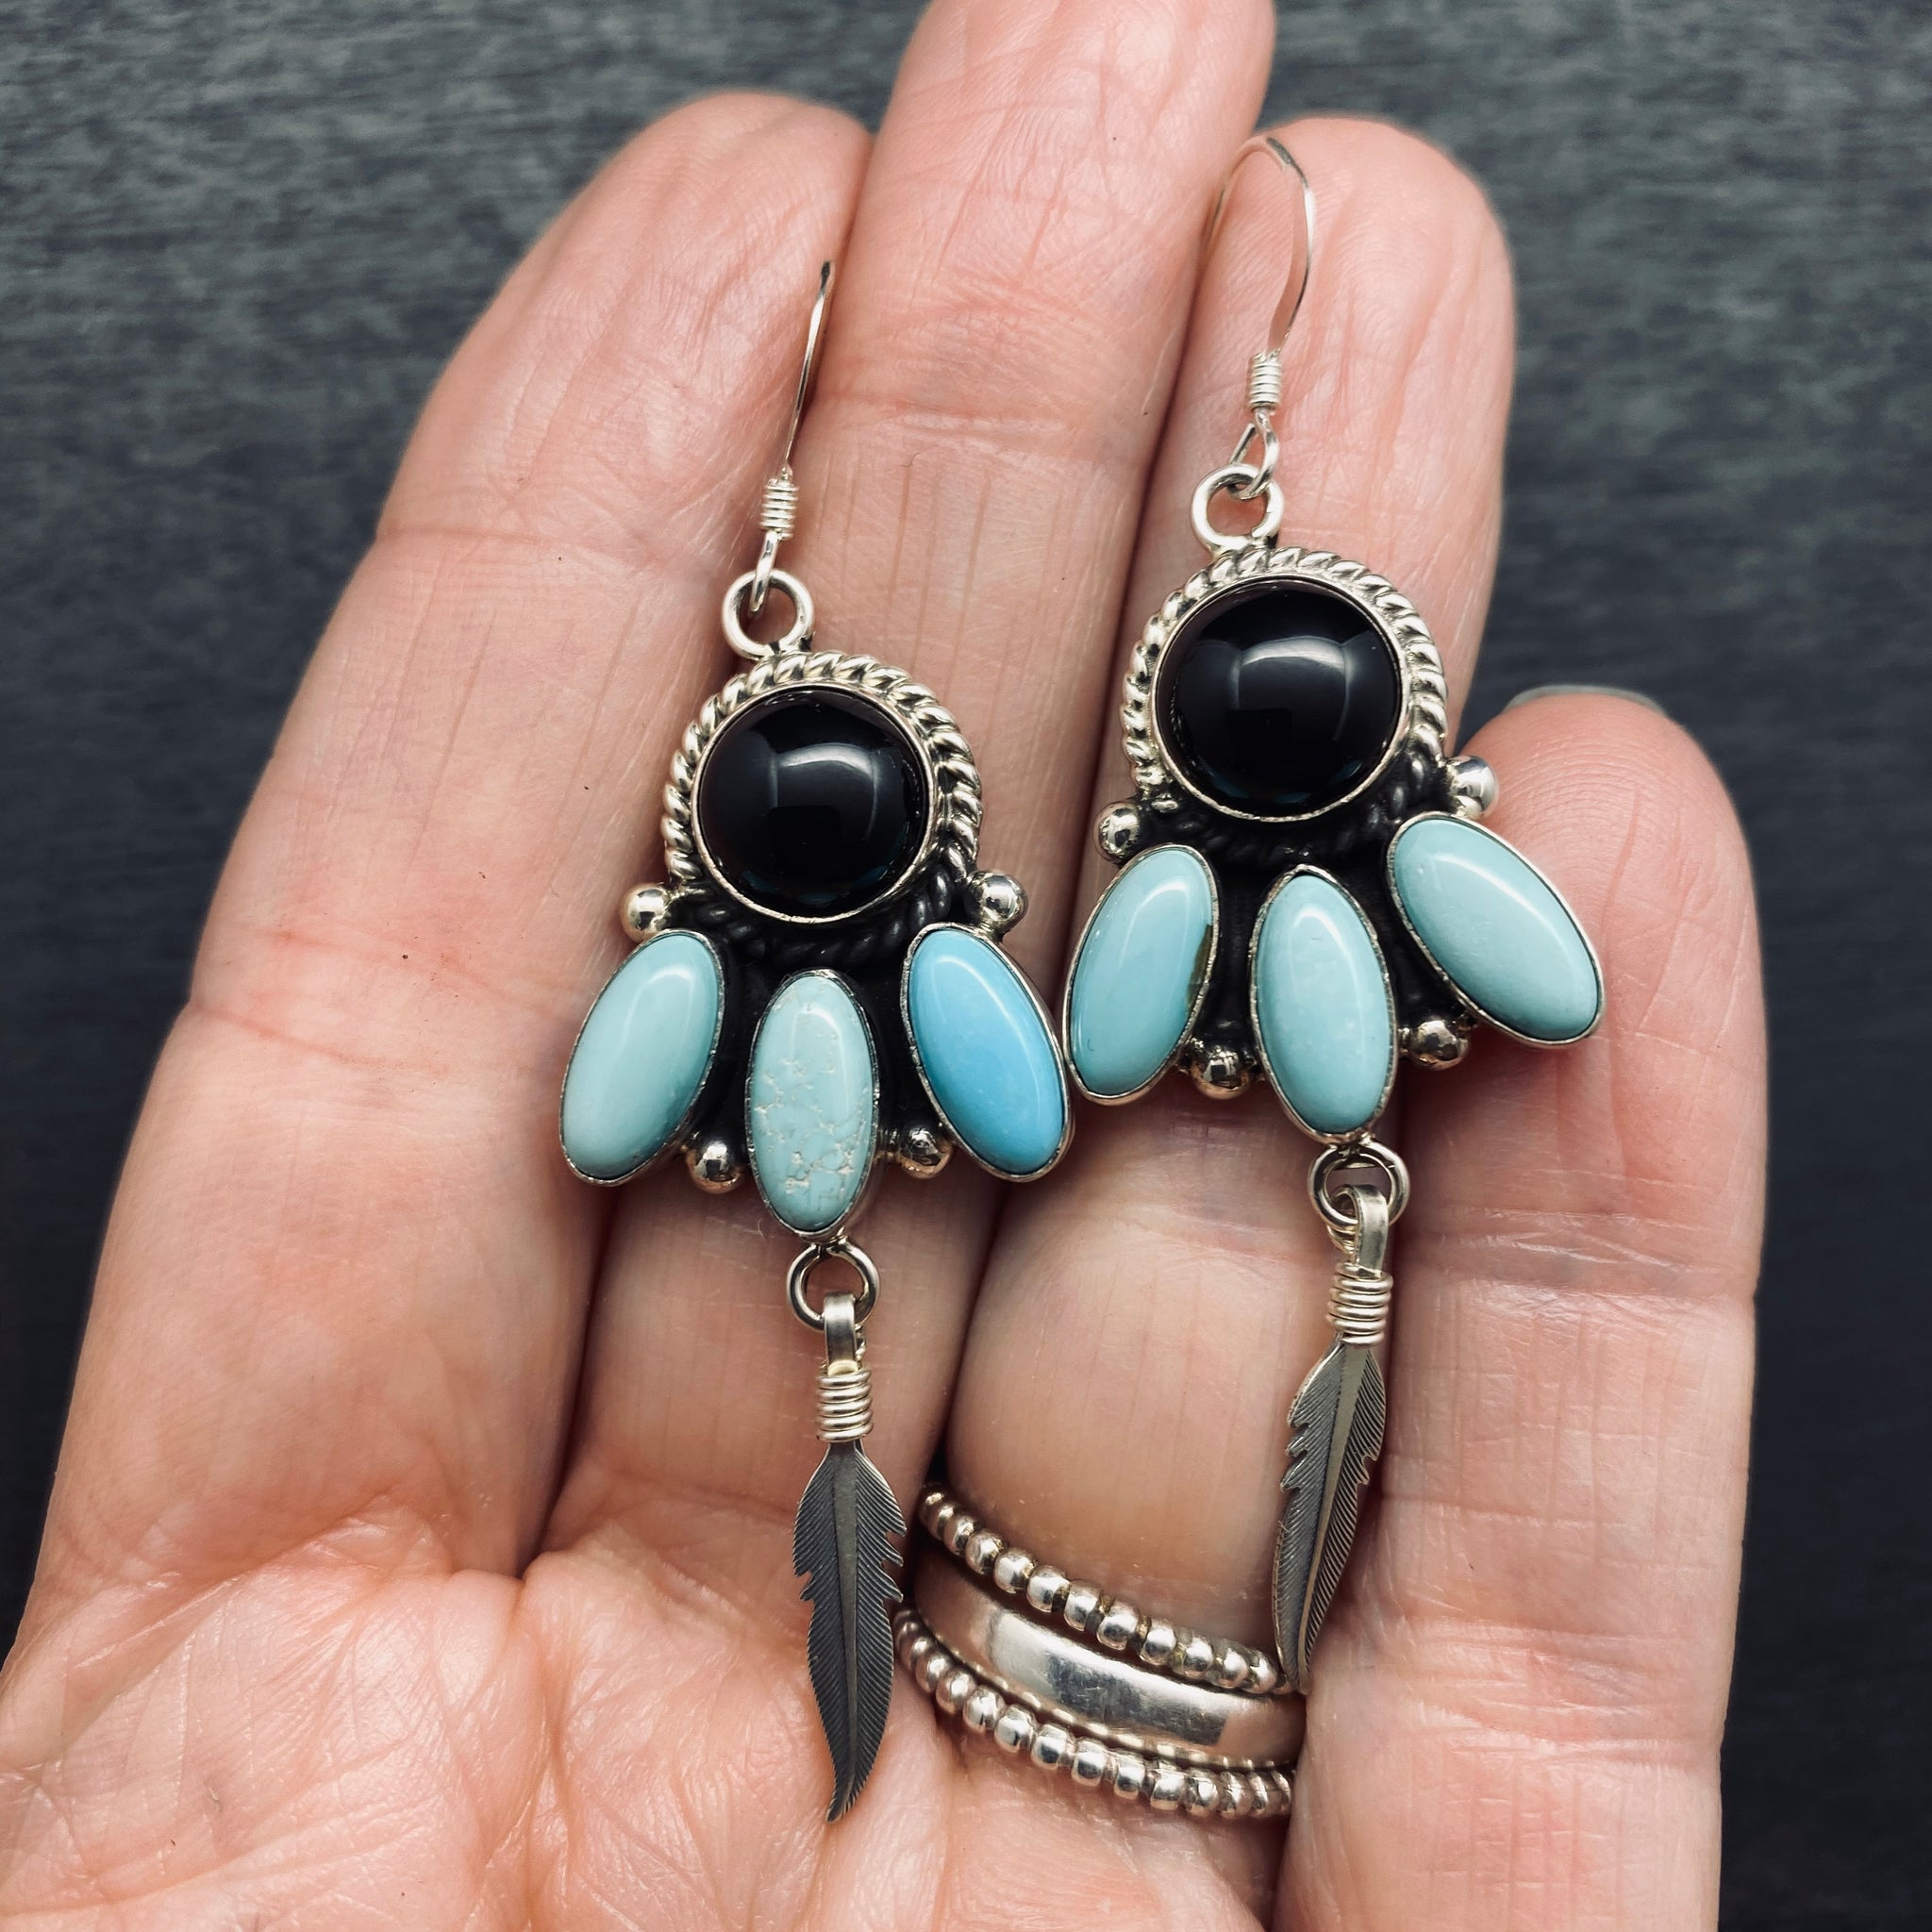 Navajo made sterling silver earrings with turquoise and blank onyx